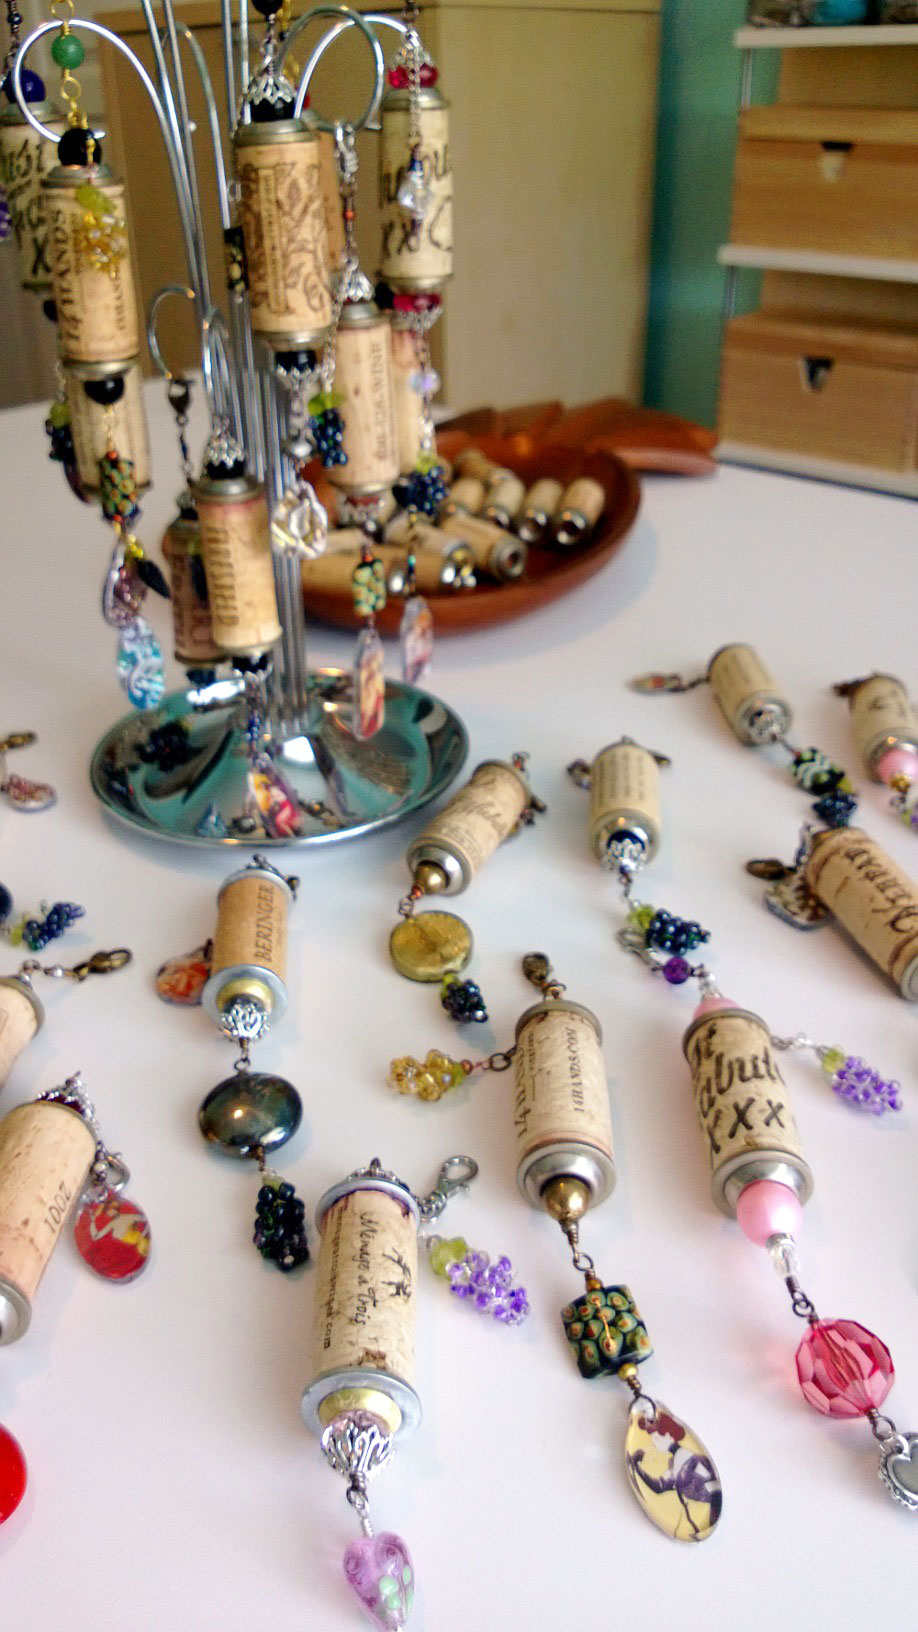 I used up most of the Tim Holtz charms and beaded grapes with this batch. Yay!